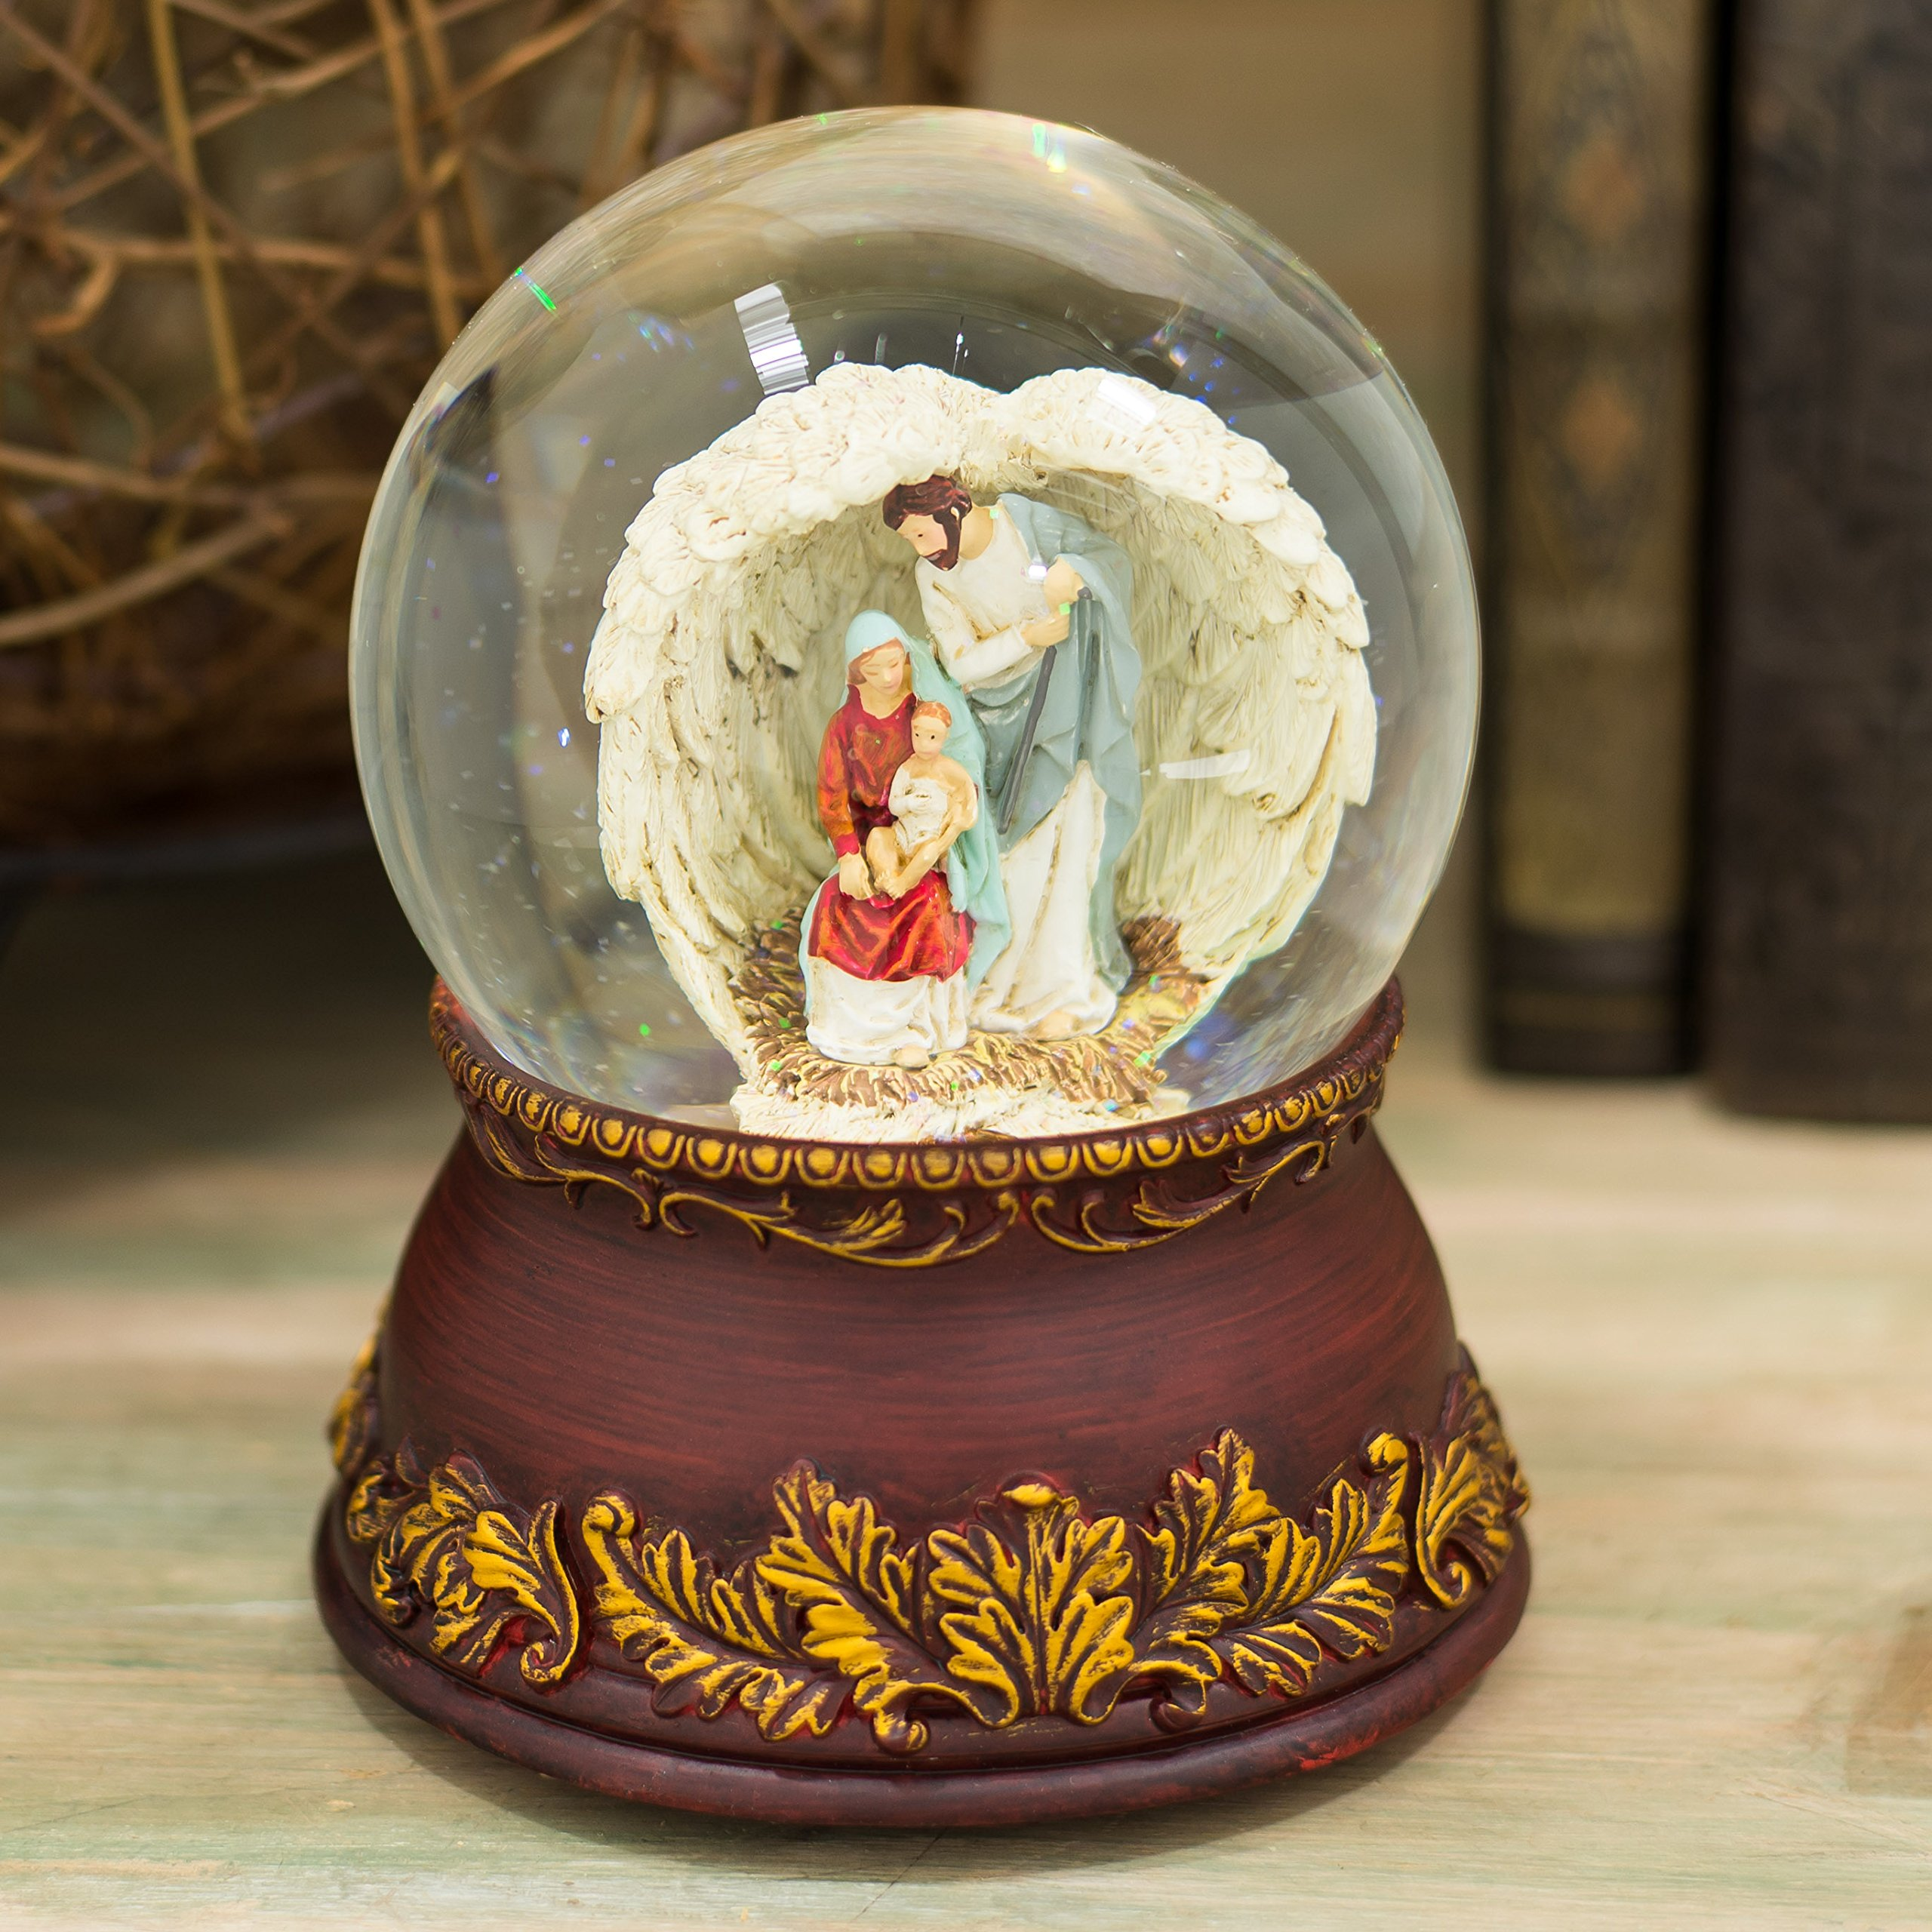 Holy Family Angel Wings Filigree 120MM Musical Glitterdome Water Globe Plays O Come All Ye Faithful by Roman (Image #2)